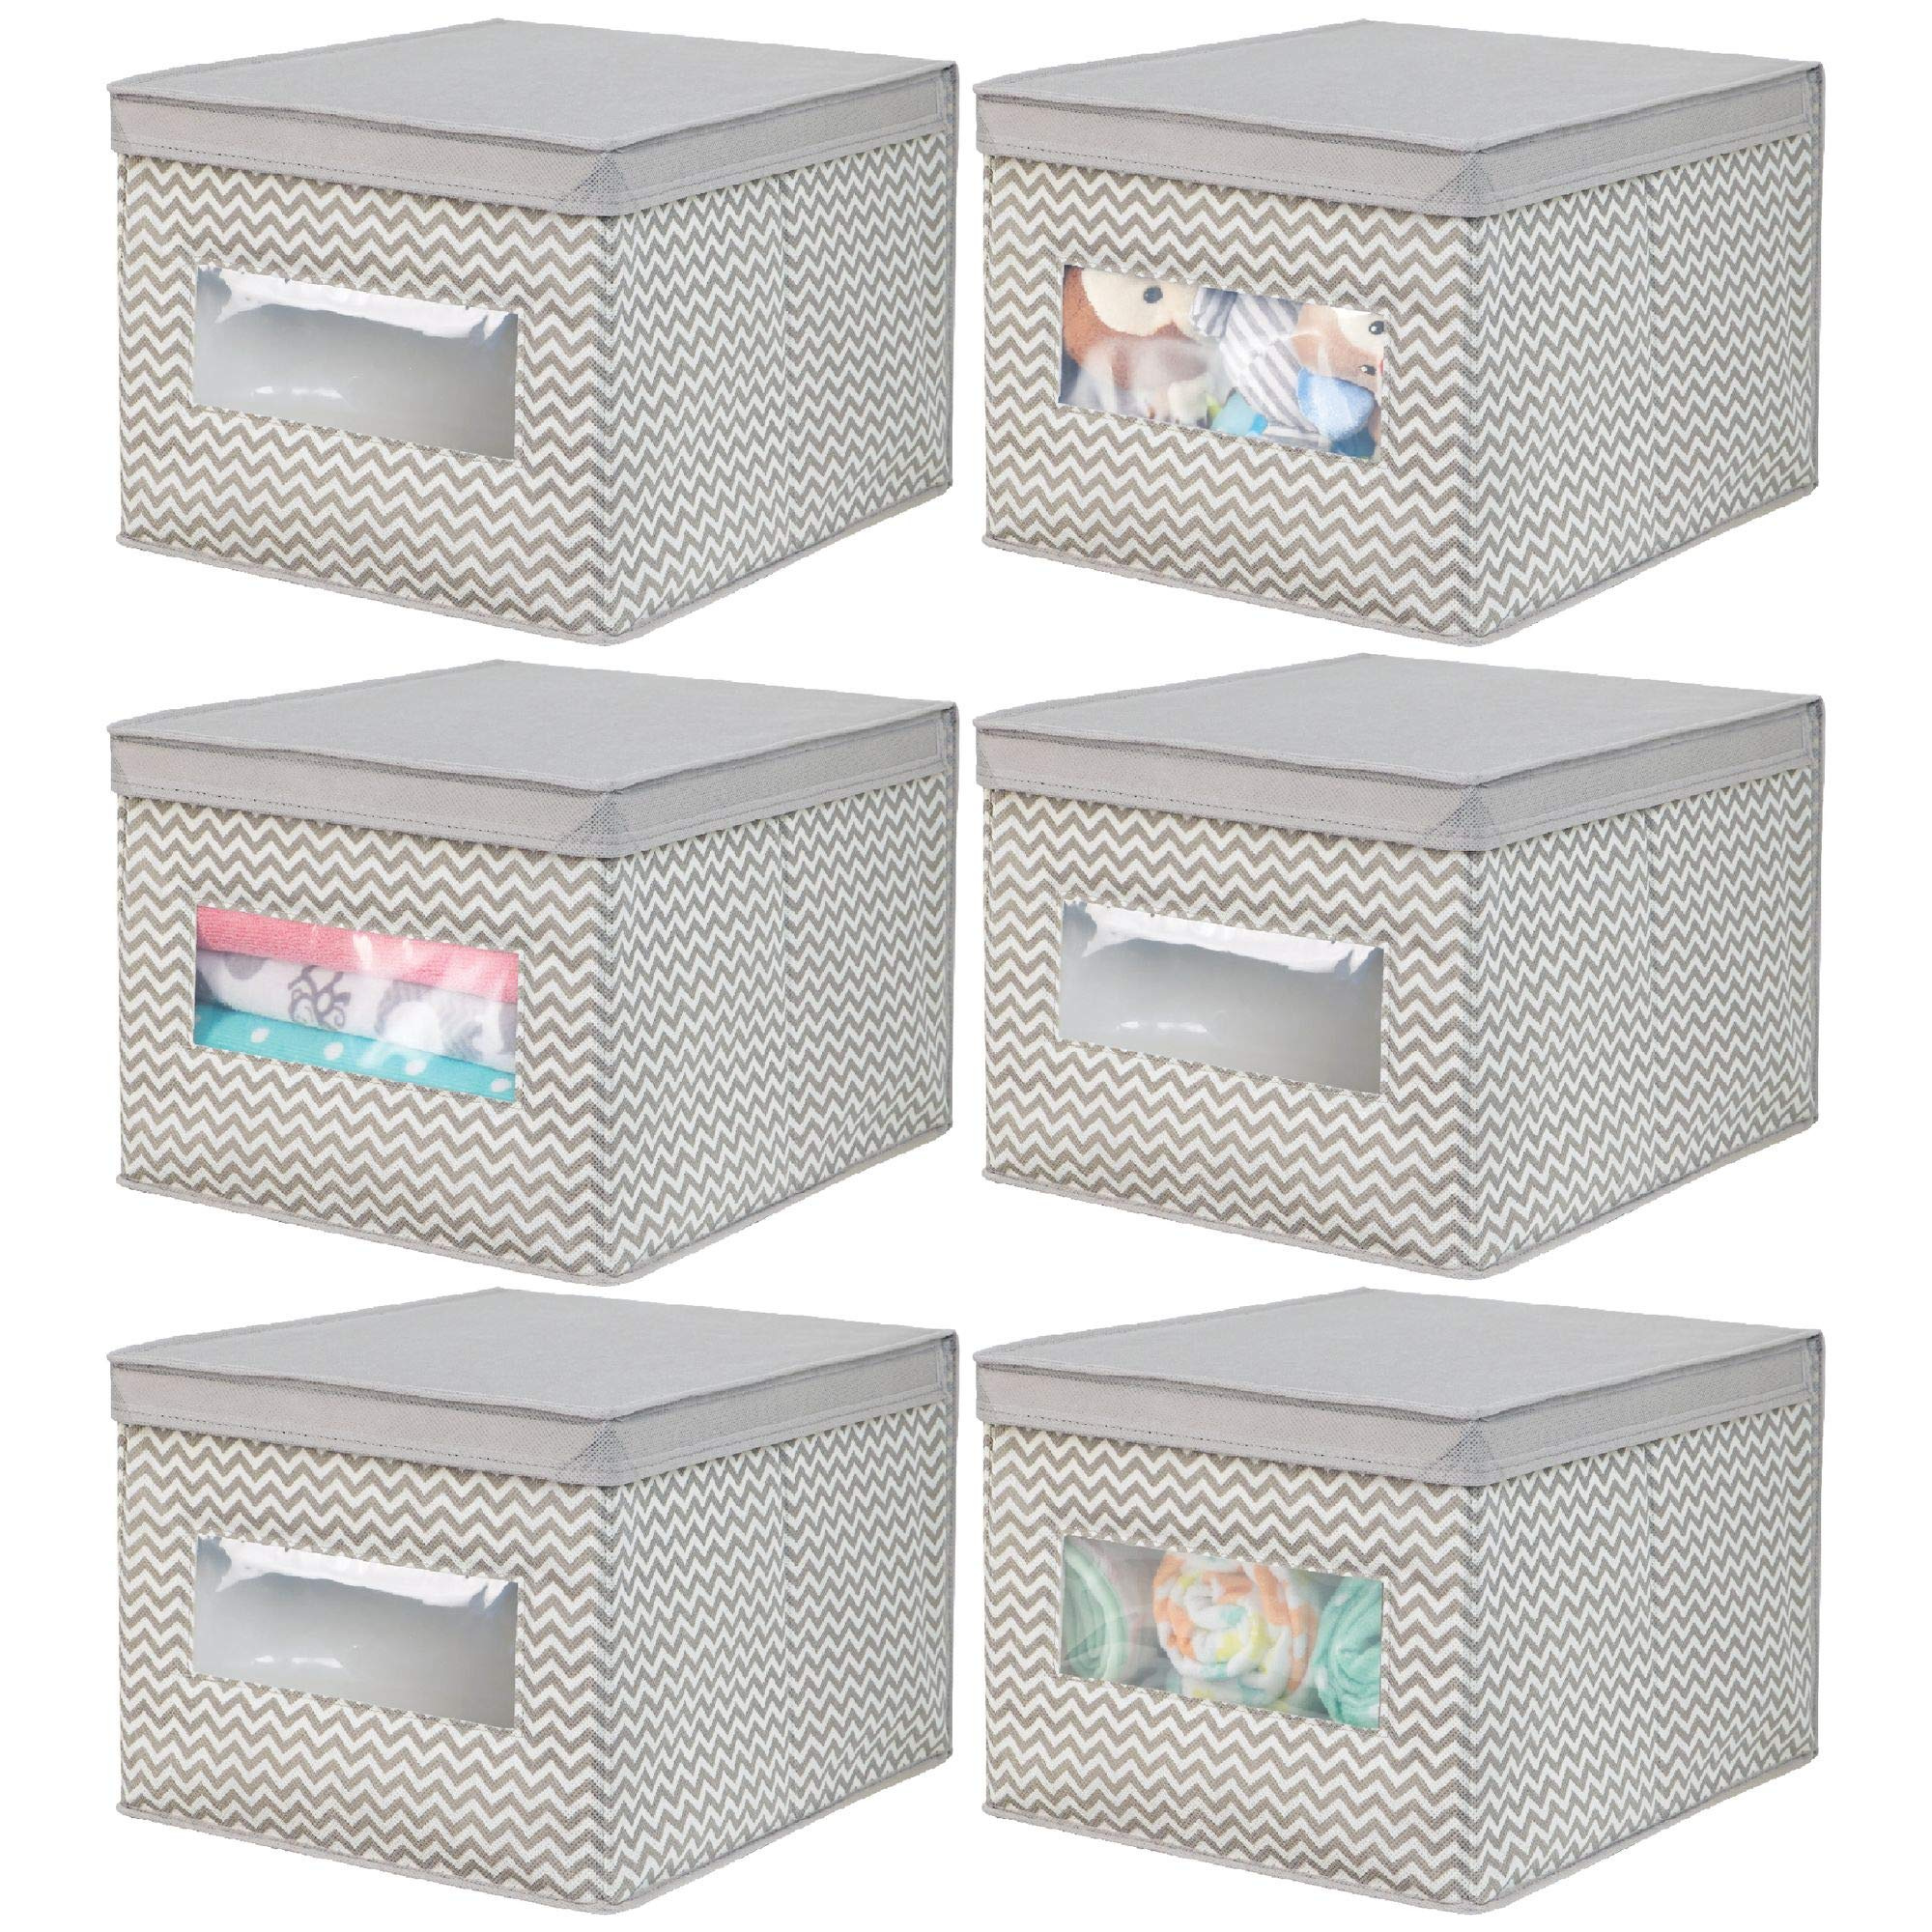 mDesign Soft Stackable Fabric Closet Storage Organizer Holder Box - Clear Window, Attached Hinged Lid, for Child/Kid Room, Nursery - Fun Zig Zag Chevron Pattern - Large, Pack of 6, Taupe/Natural